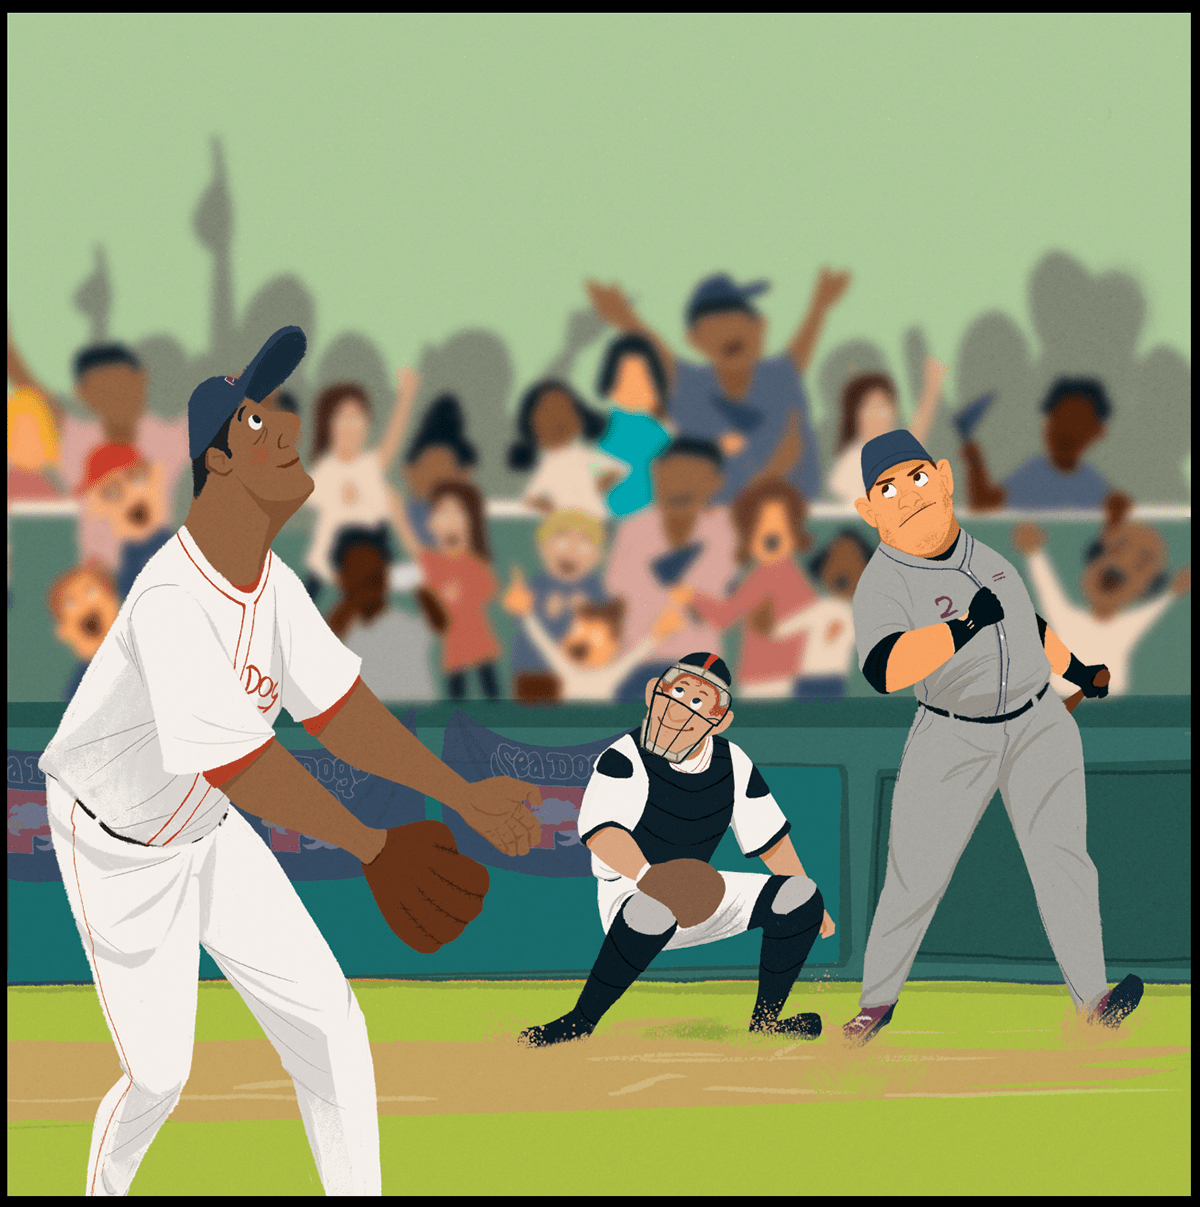 Image may contain: baseball, person and outdoor